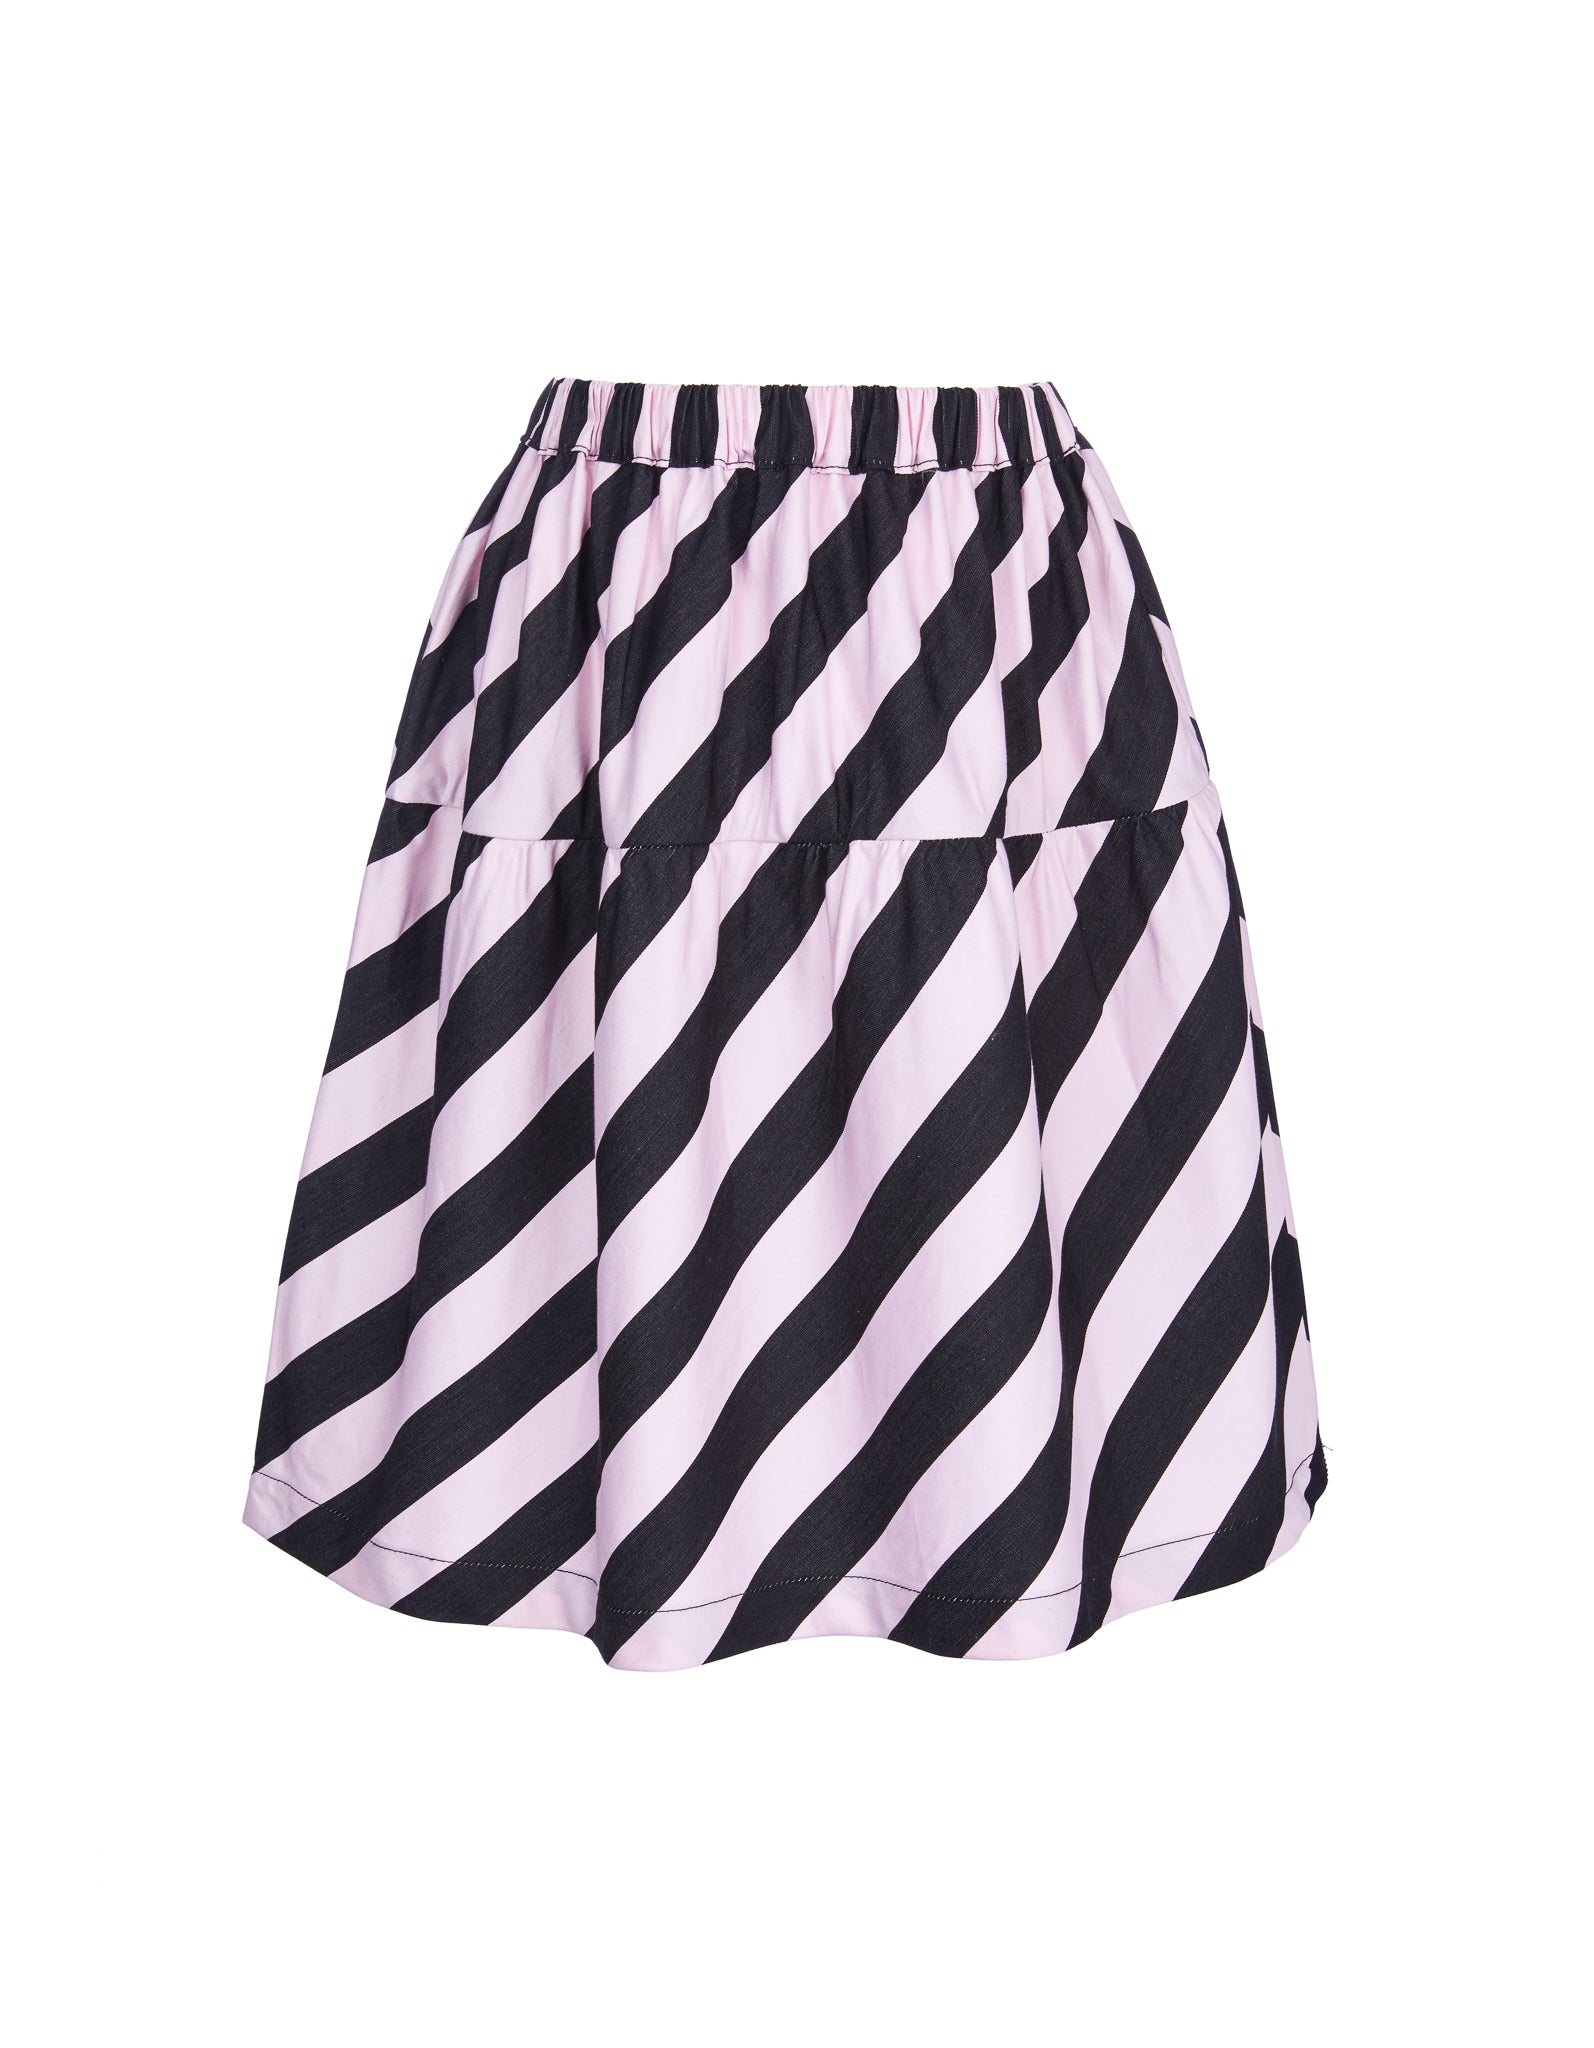 M'A KIDS WAISTBAND SKIRT IN PINK AND BLACK